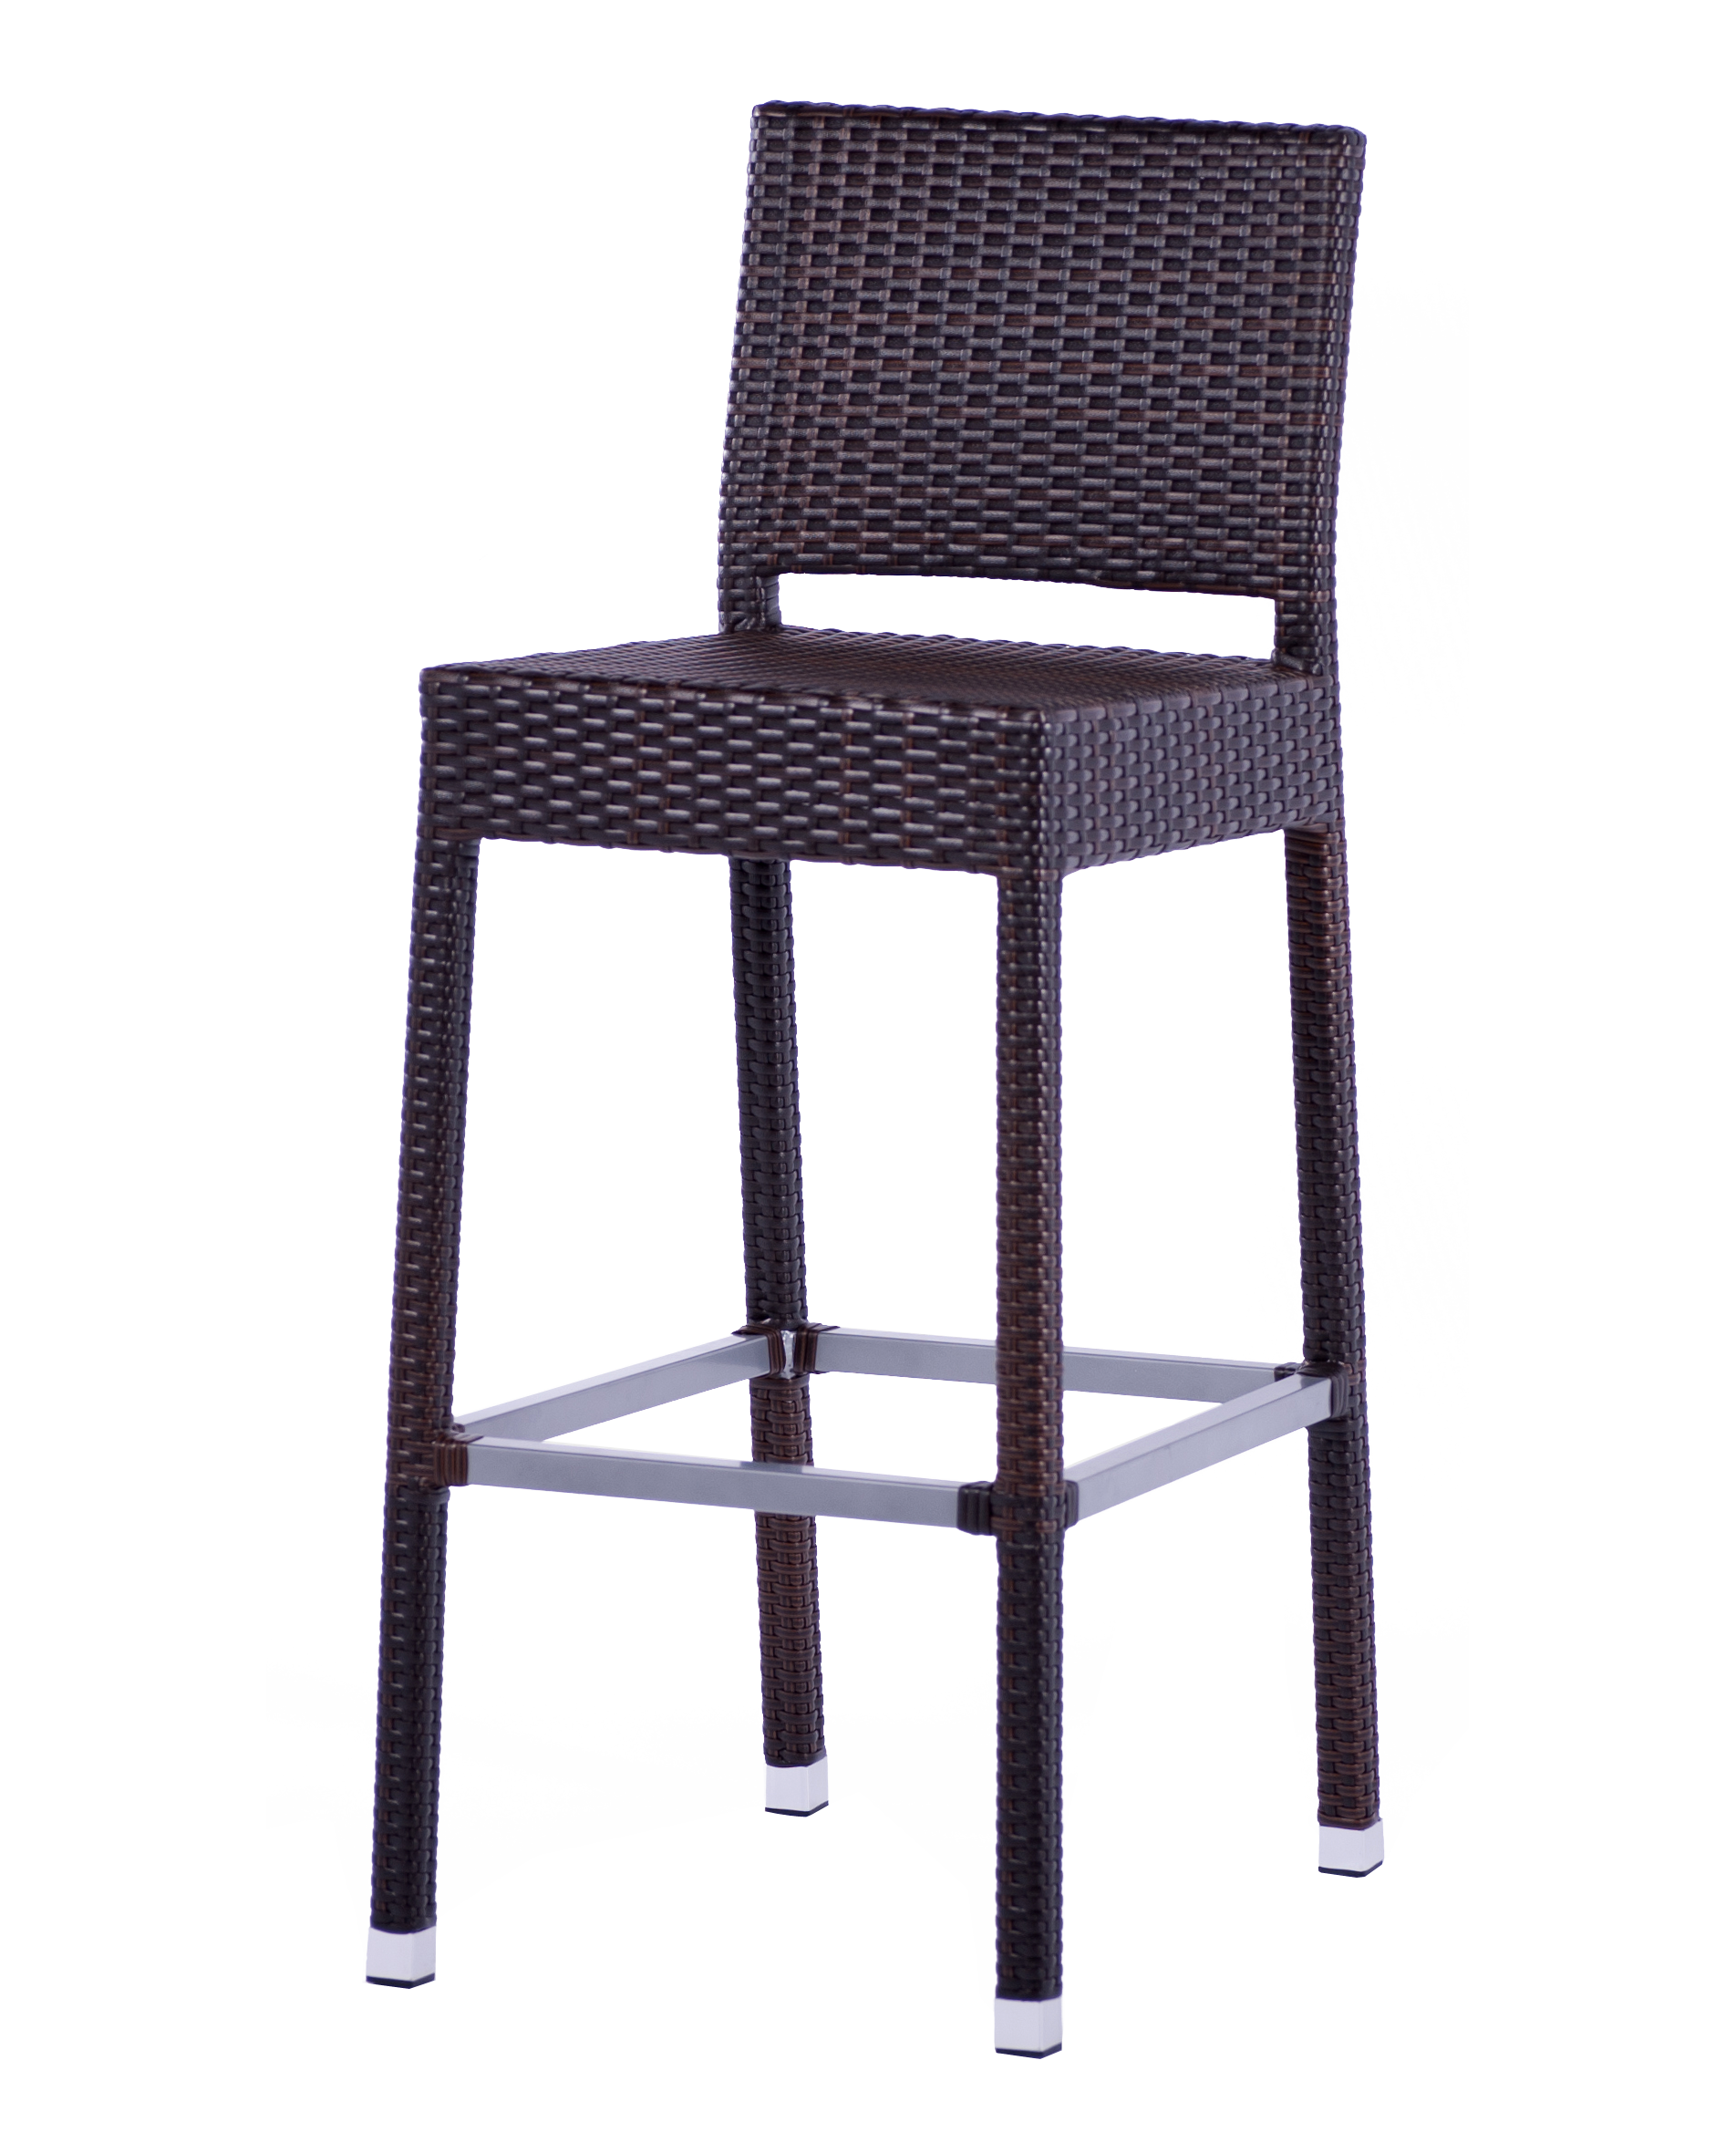 Gama Outdoor Indoor Synthetic Wicker Barstool : GamaBarstool from www.seatingconnection.com size 1904 x 2350 png 1783kB